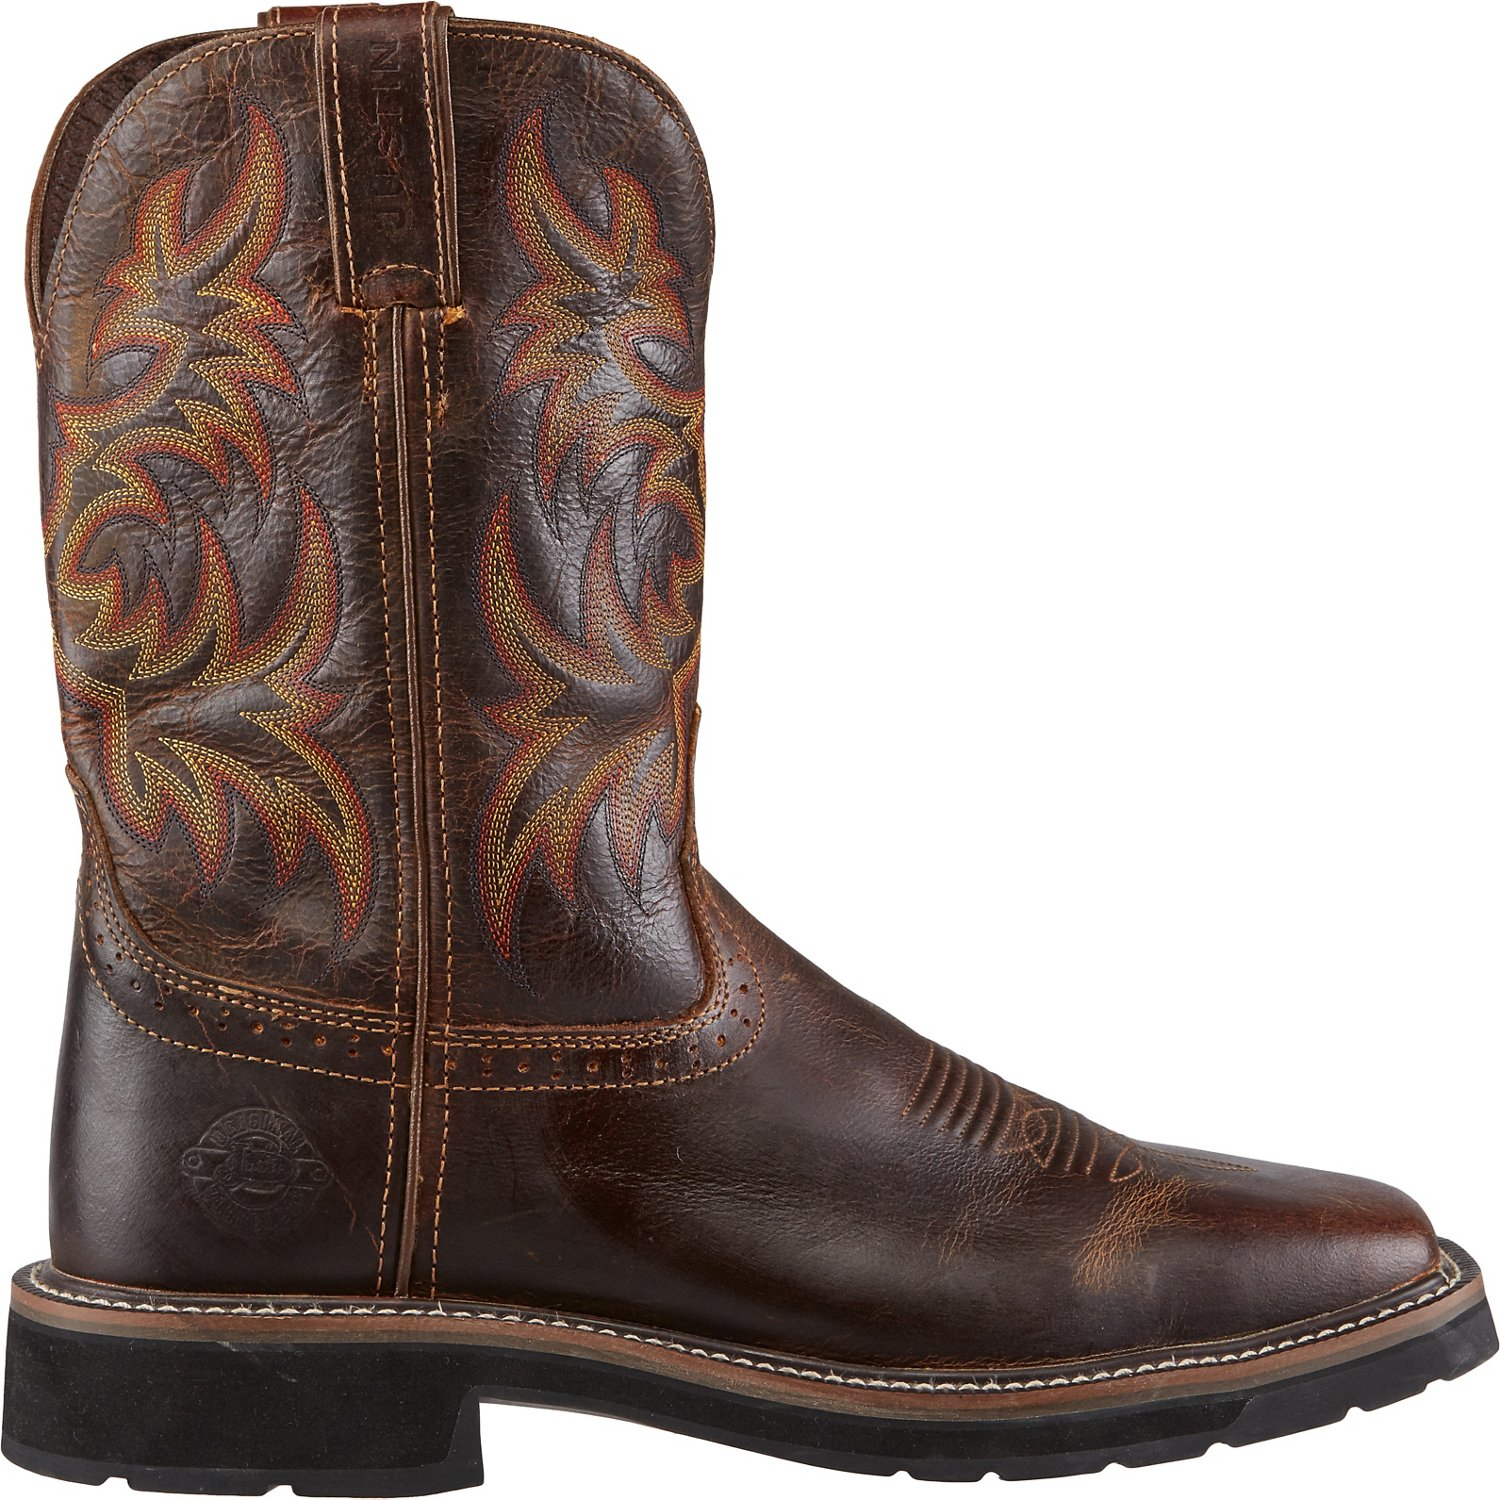 Men S Boots Western Boots Work Boots Hunting Boots